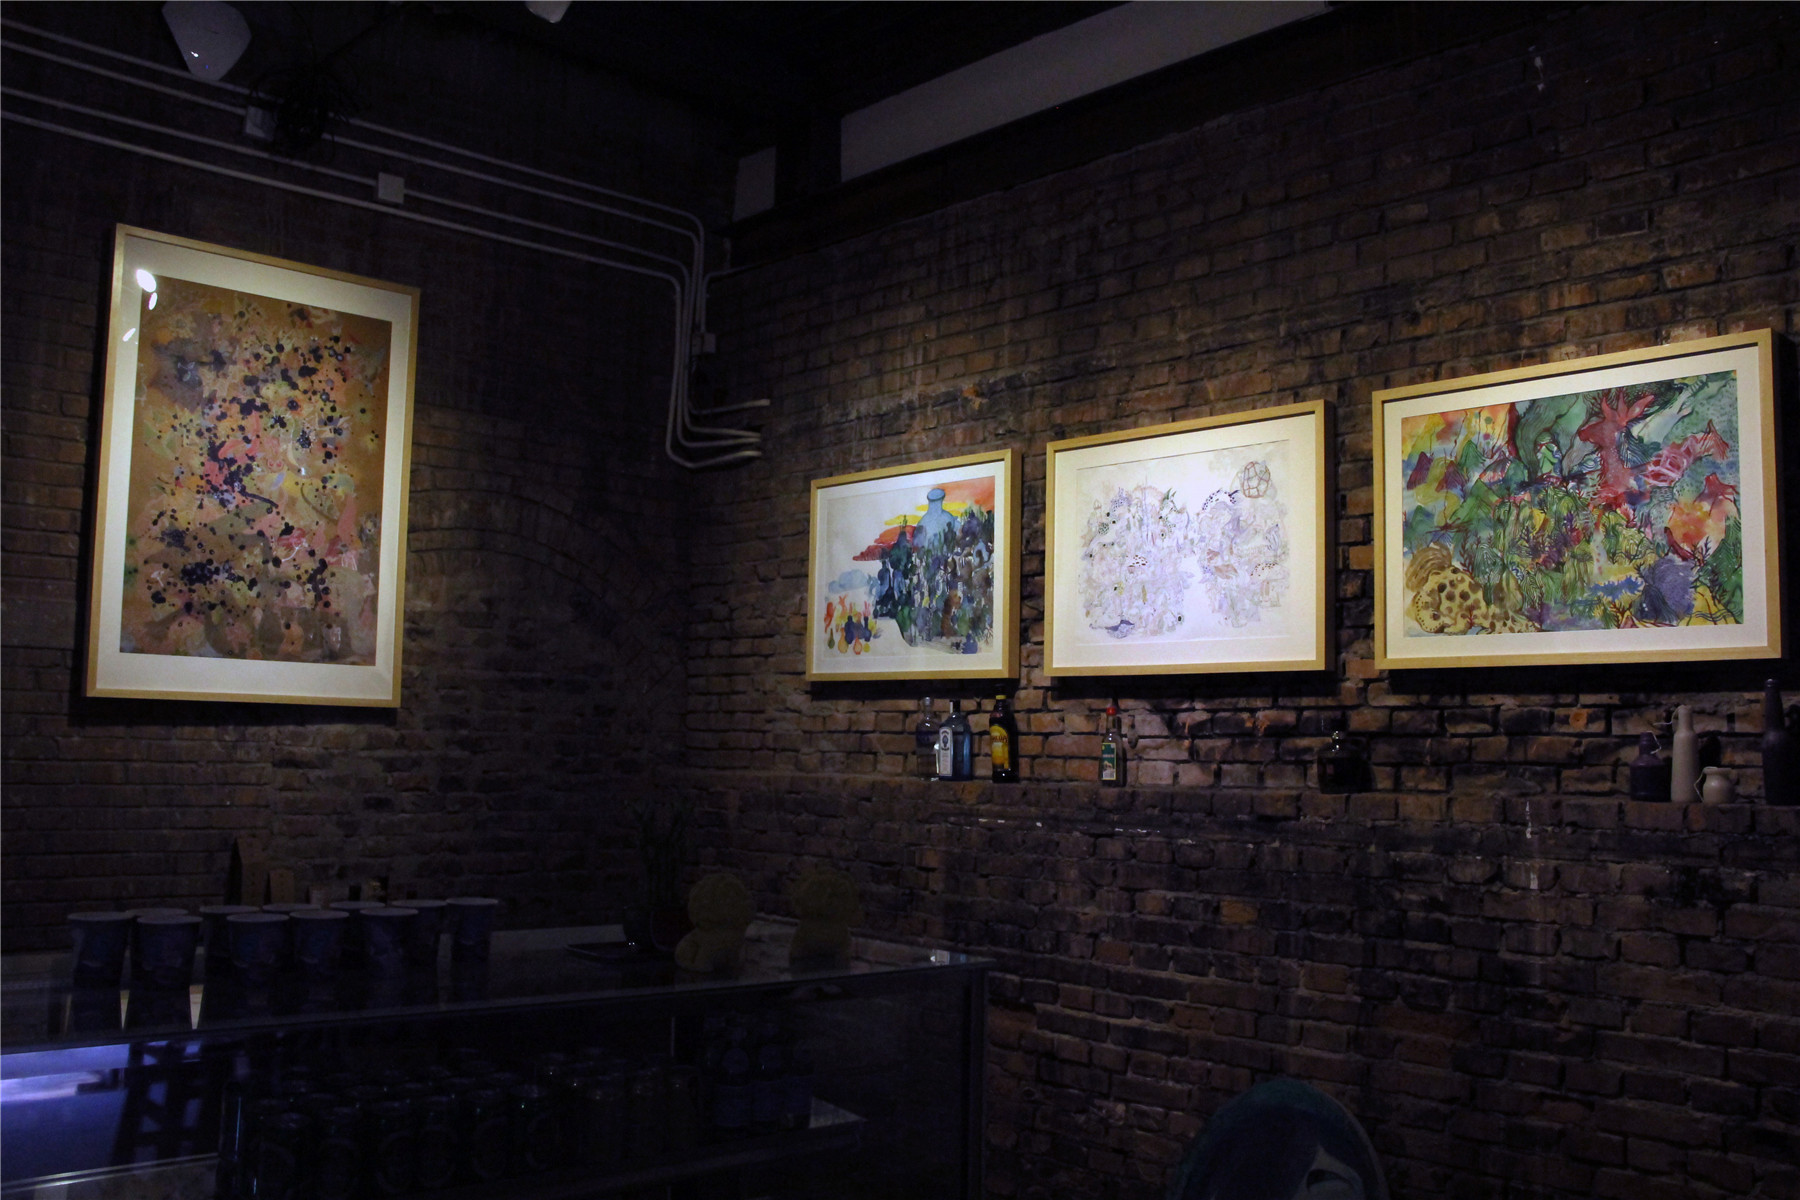 The No. 37 story — A Solo Show by Zhifei Chang (Being 3 Gallery Artist in Residency)